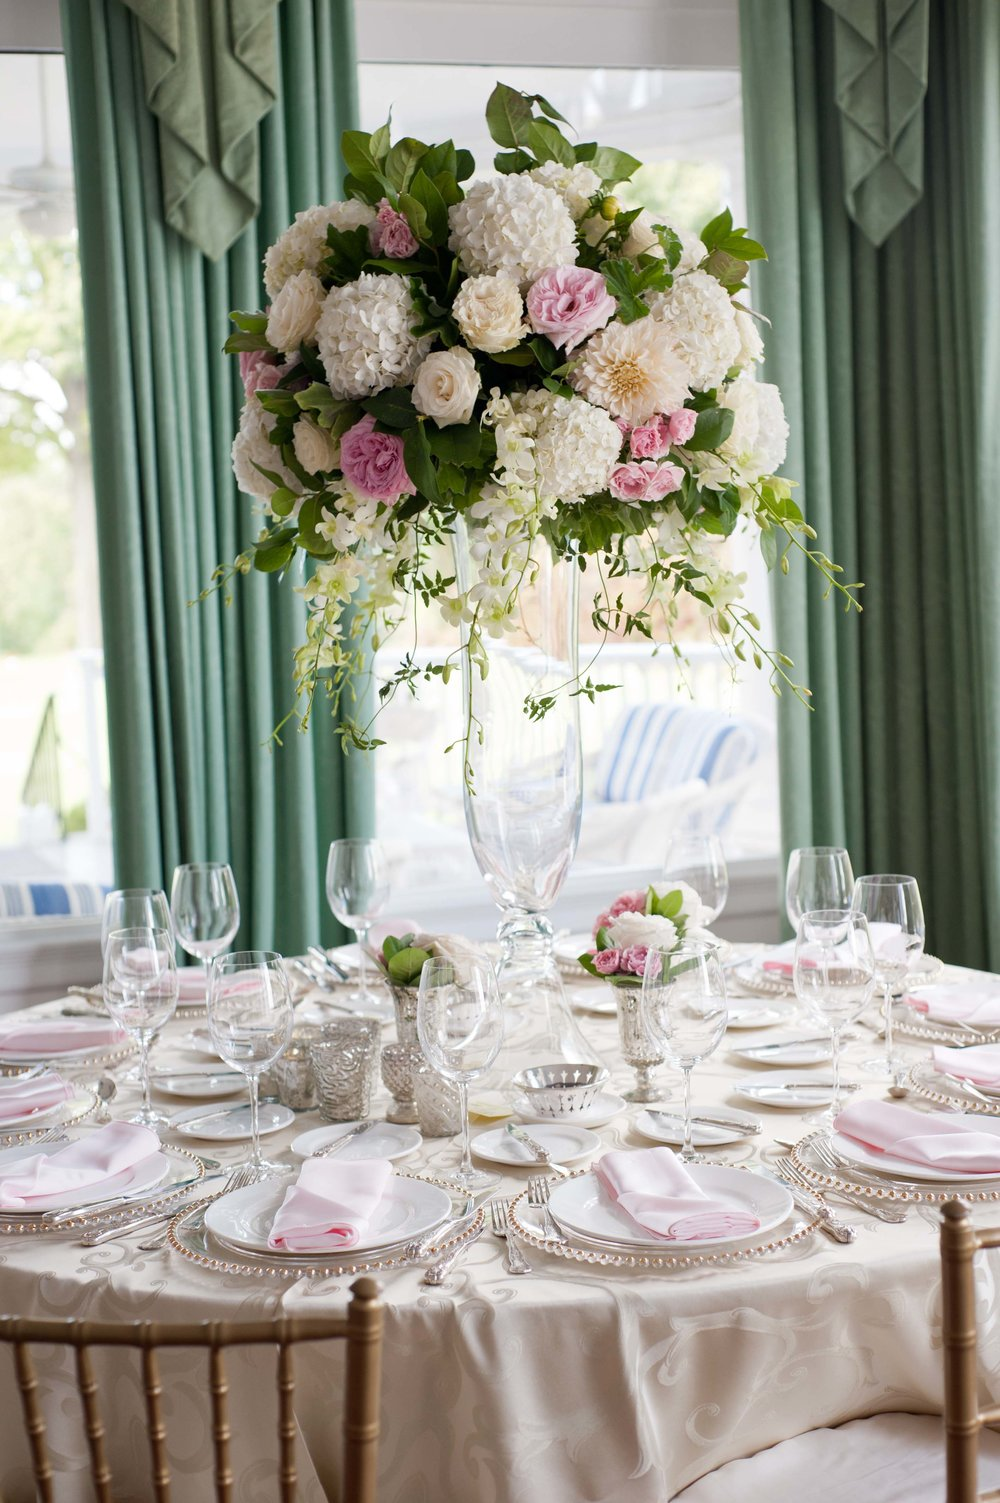 Cincinnati Wedding Flowers, Courtenay Lambert Floral & Event Design, Cincinnati Florists, Cincinnati Country Club